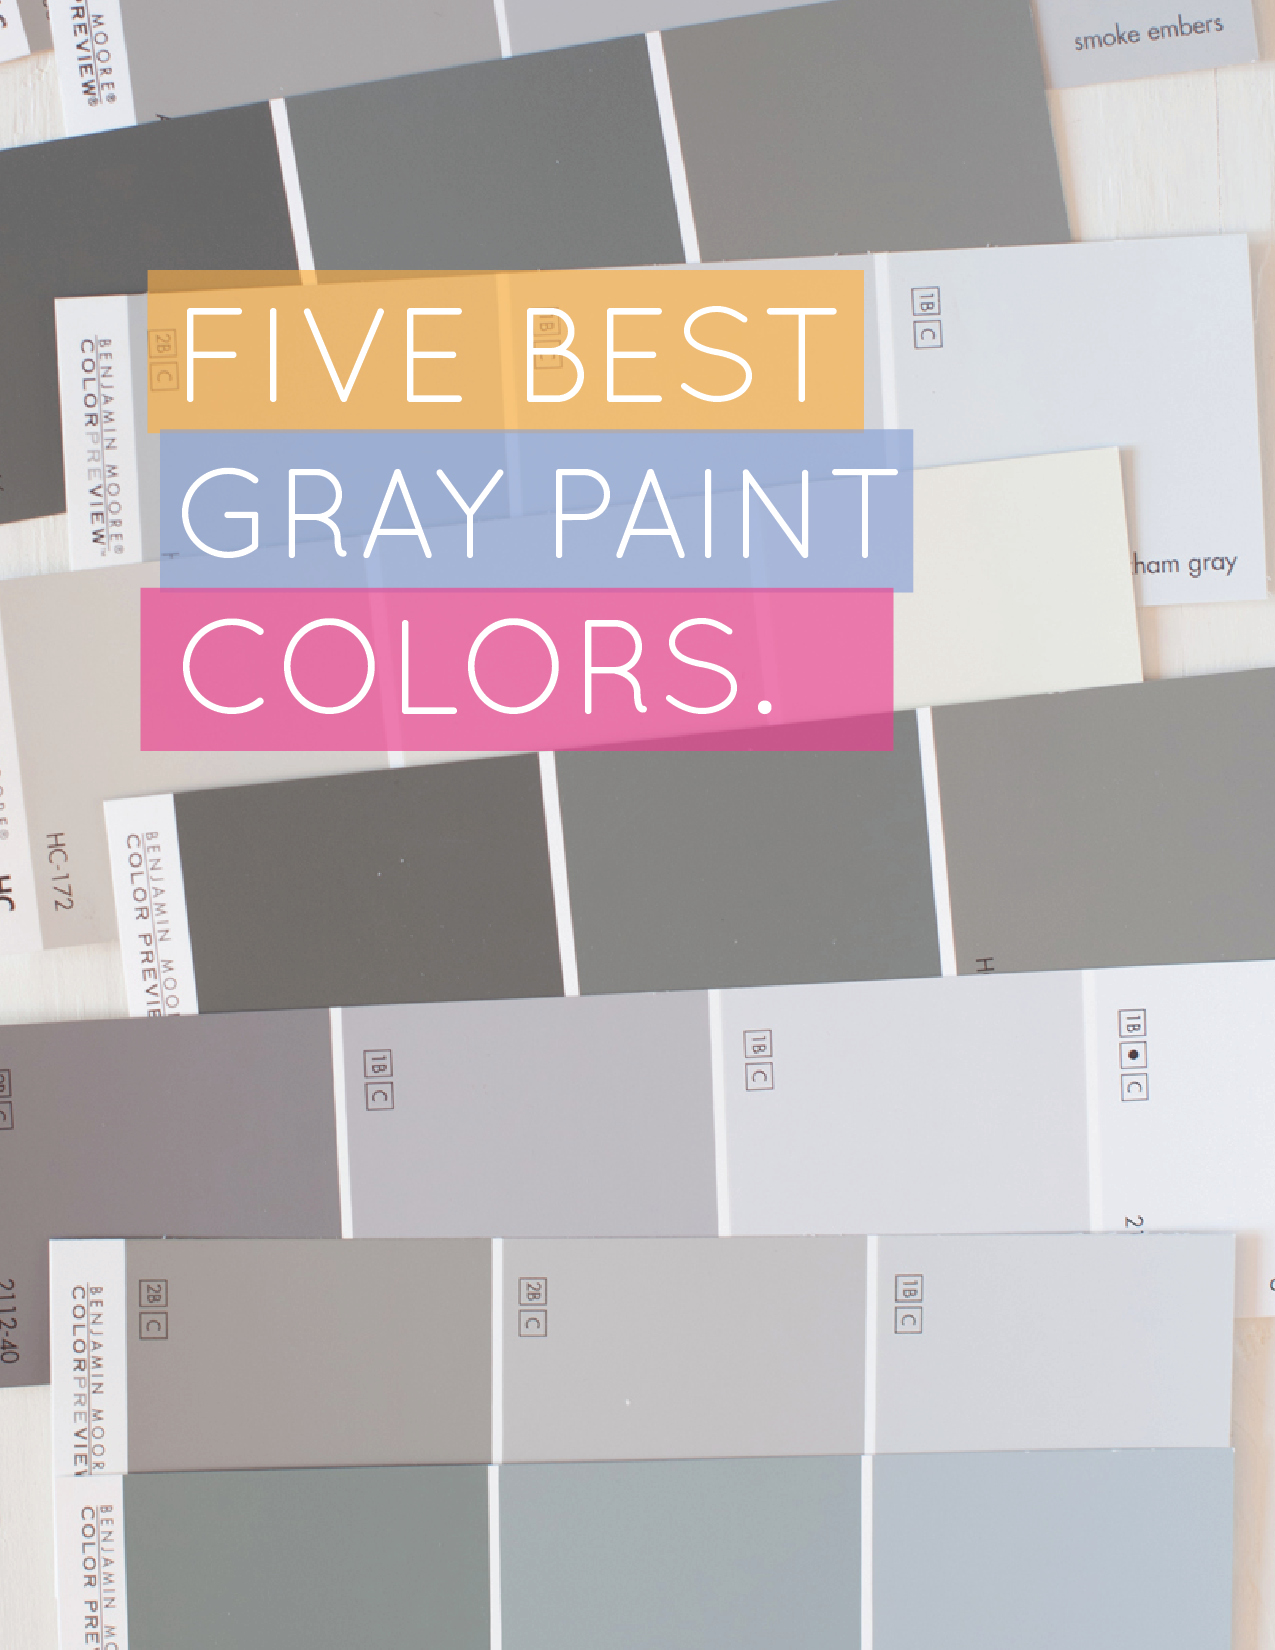 best gray for living room wooden sofa set designs small alice and lois5 paint colors 5 on aliceandlois com